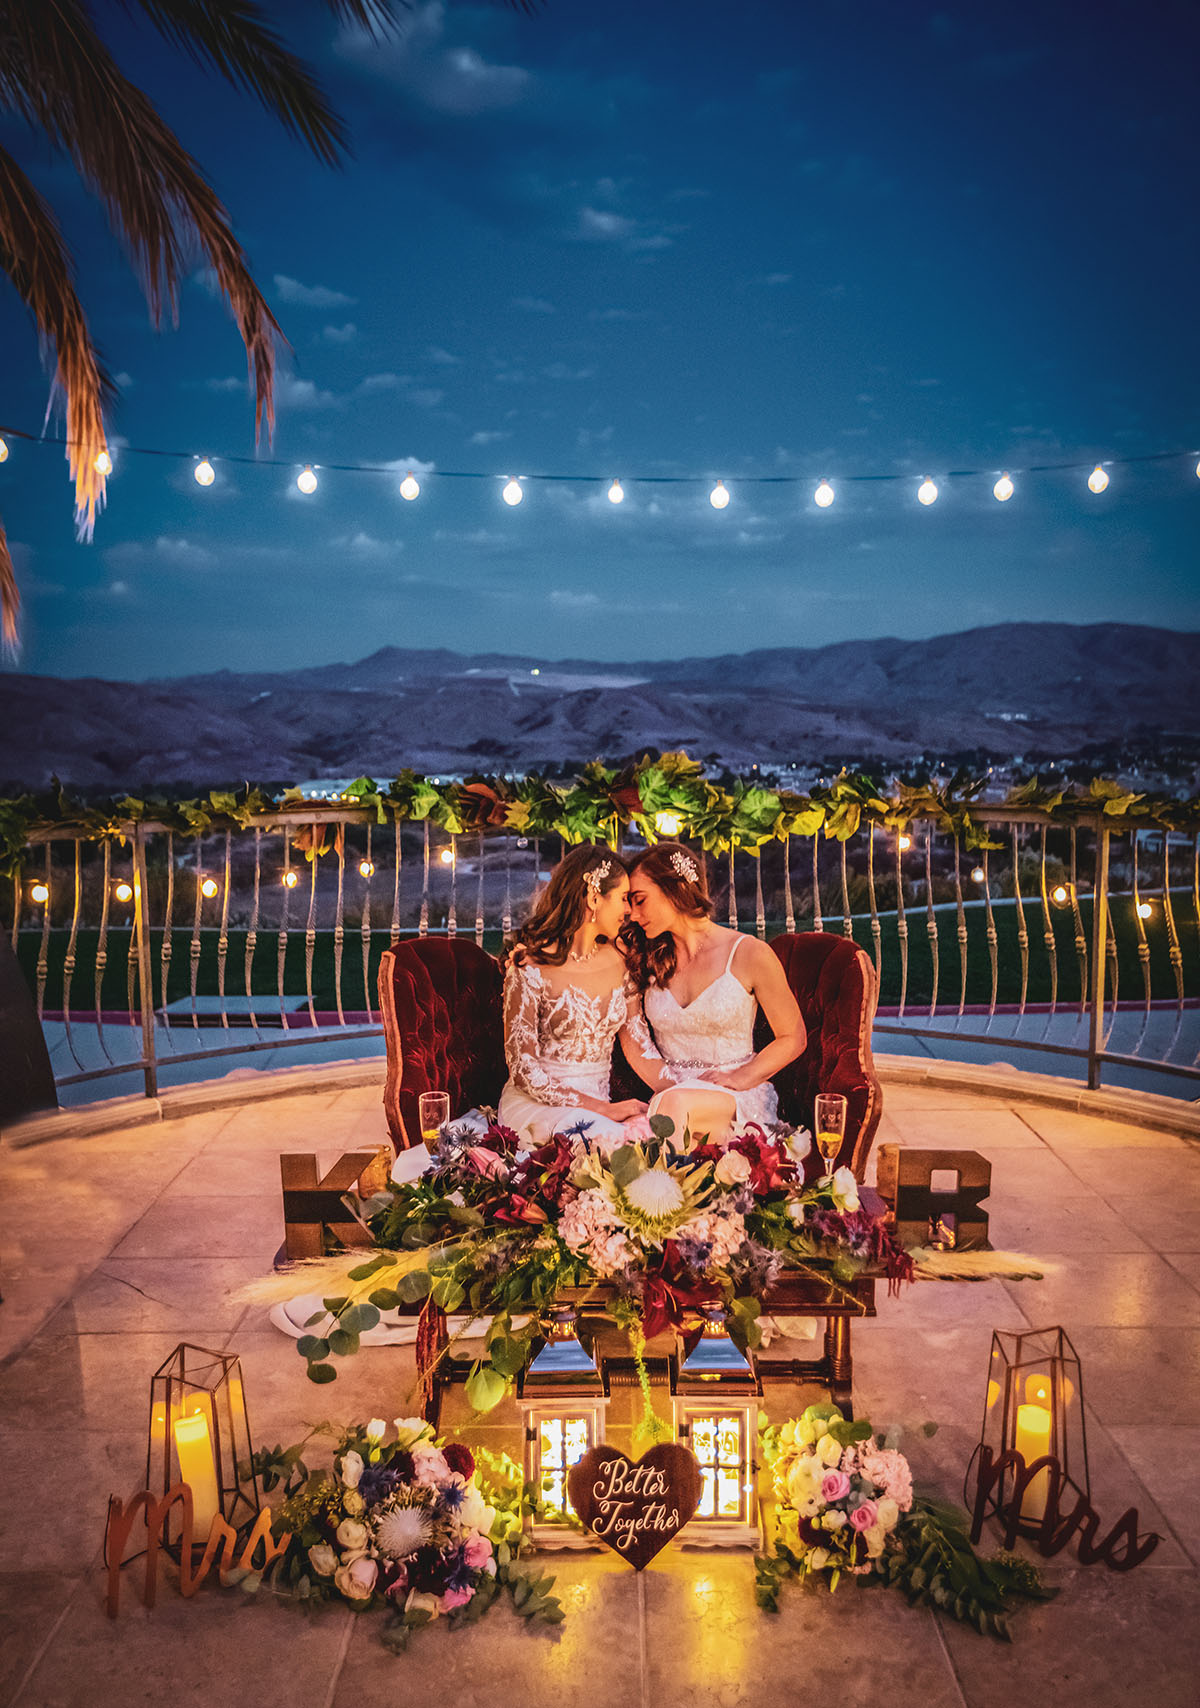 Kayla and Robin's LGBTQ wedding at The Retreat in Corona, CA